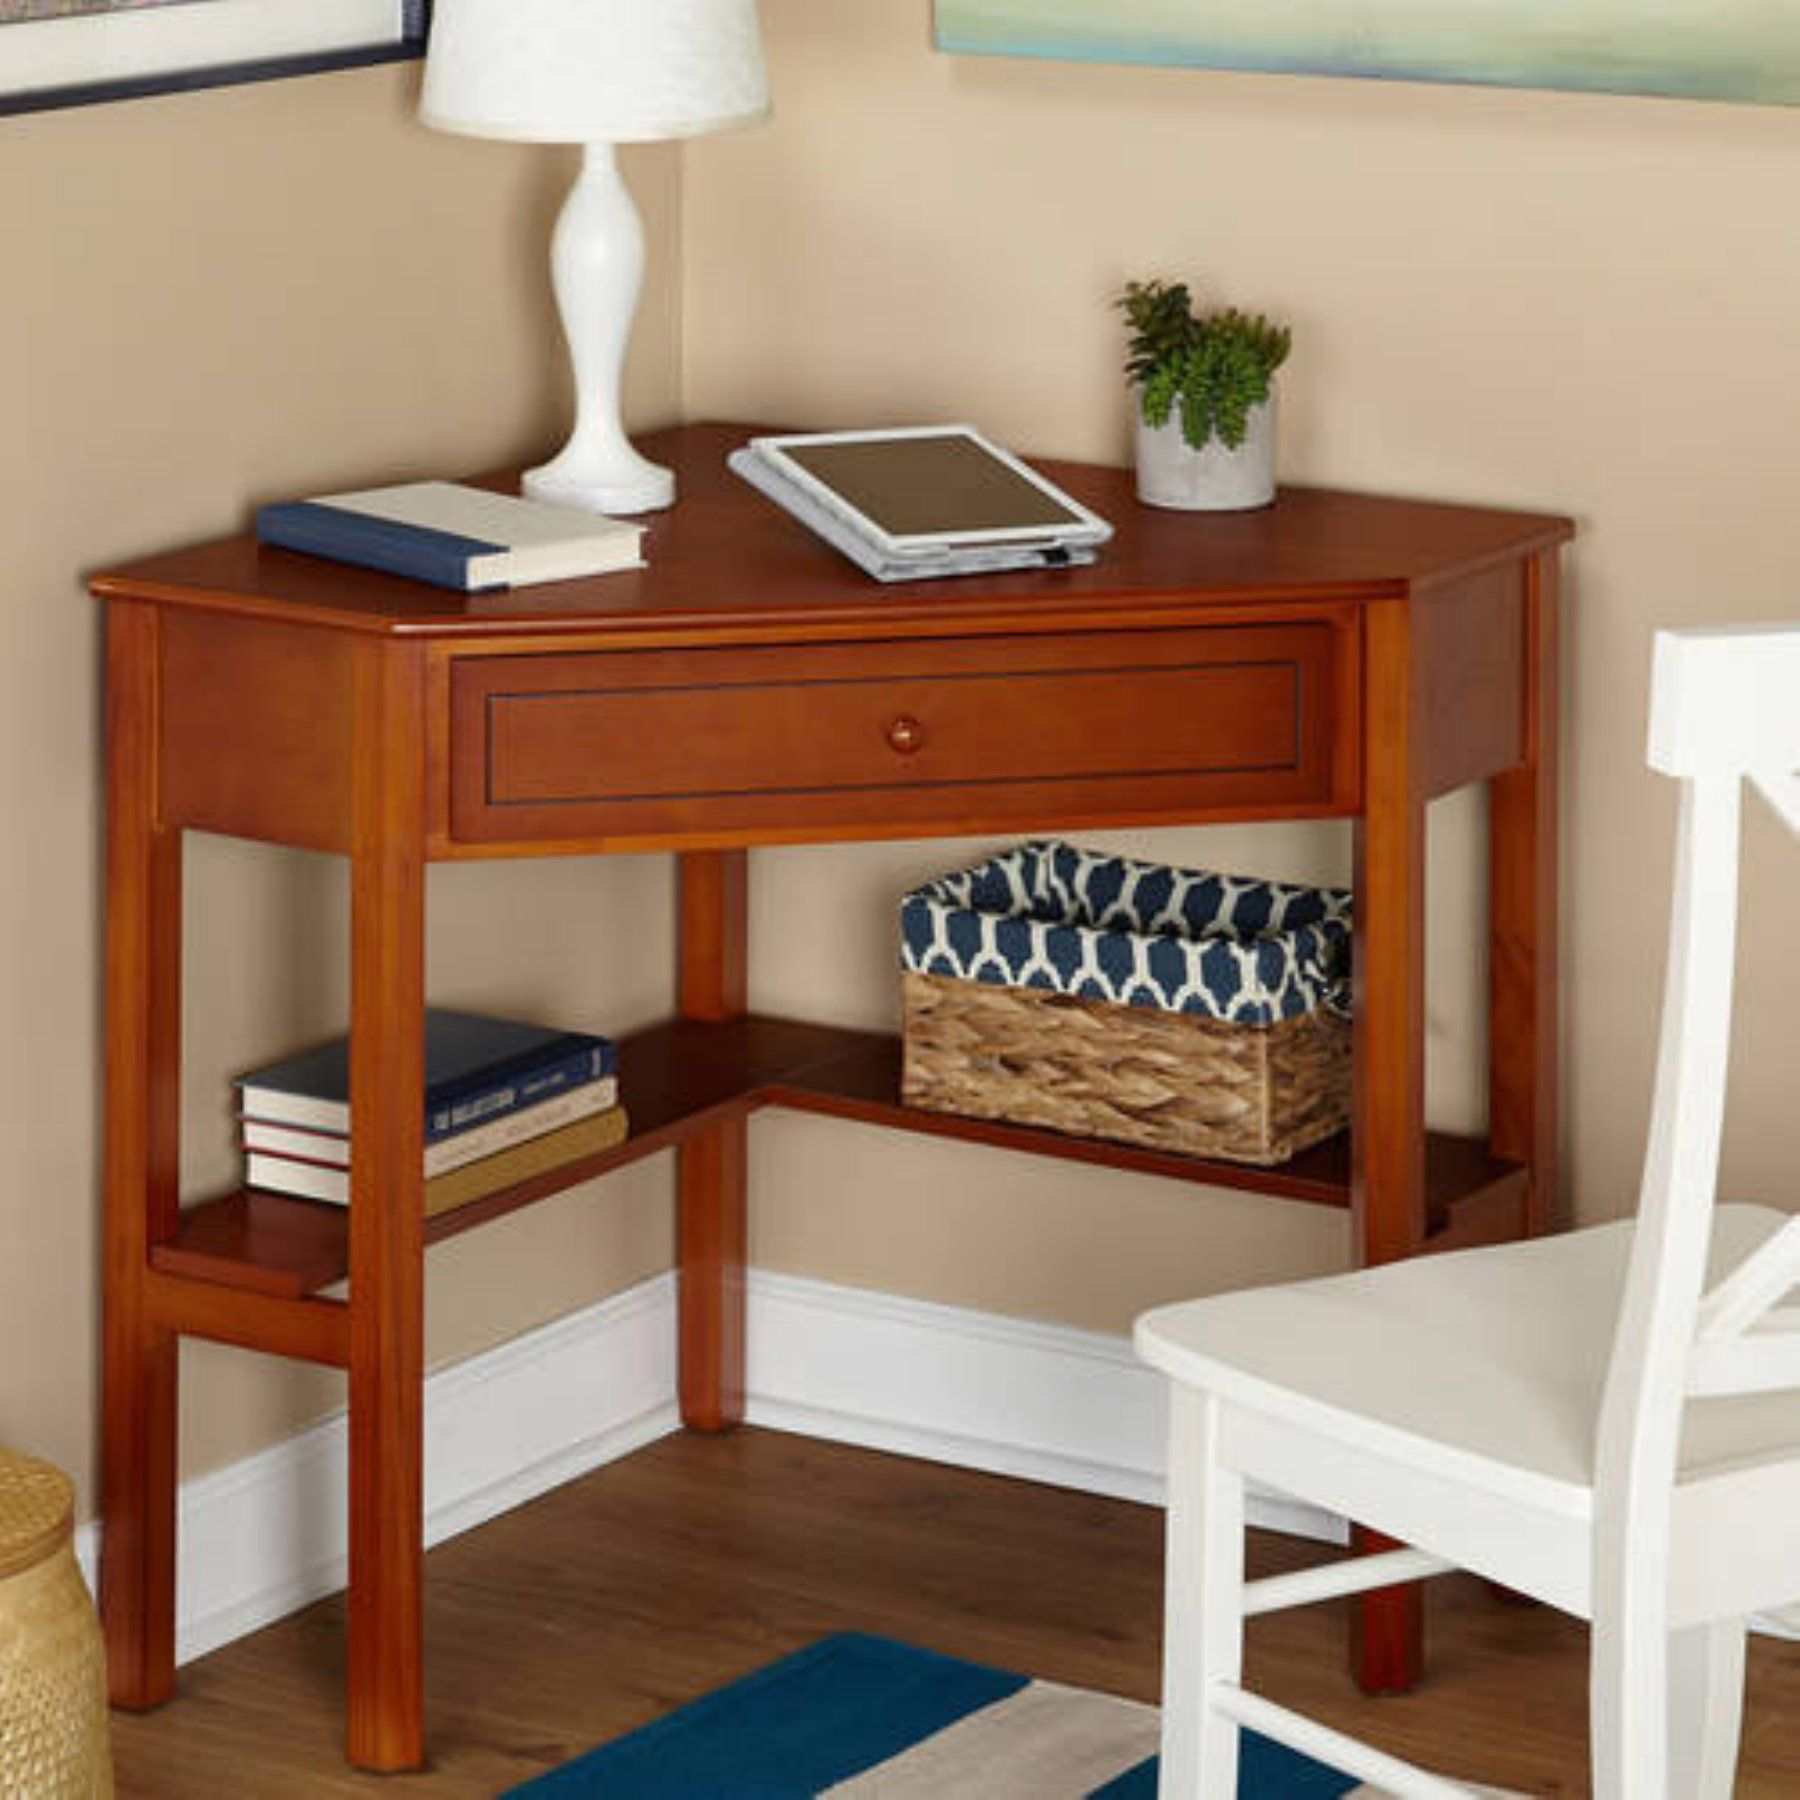 target marketing systems corner writing desk leick accent table pottery barn sofa kid runner wood and glass coffee large side butterfly mini lamps skinny wine rack trunk dining